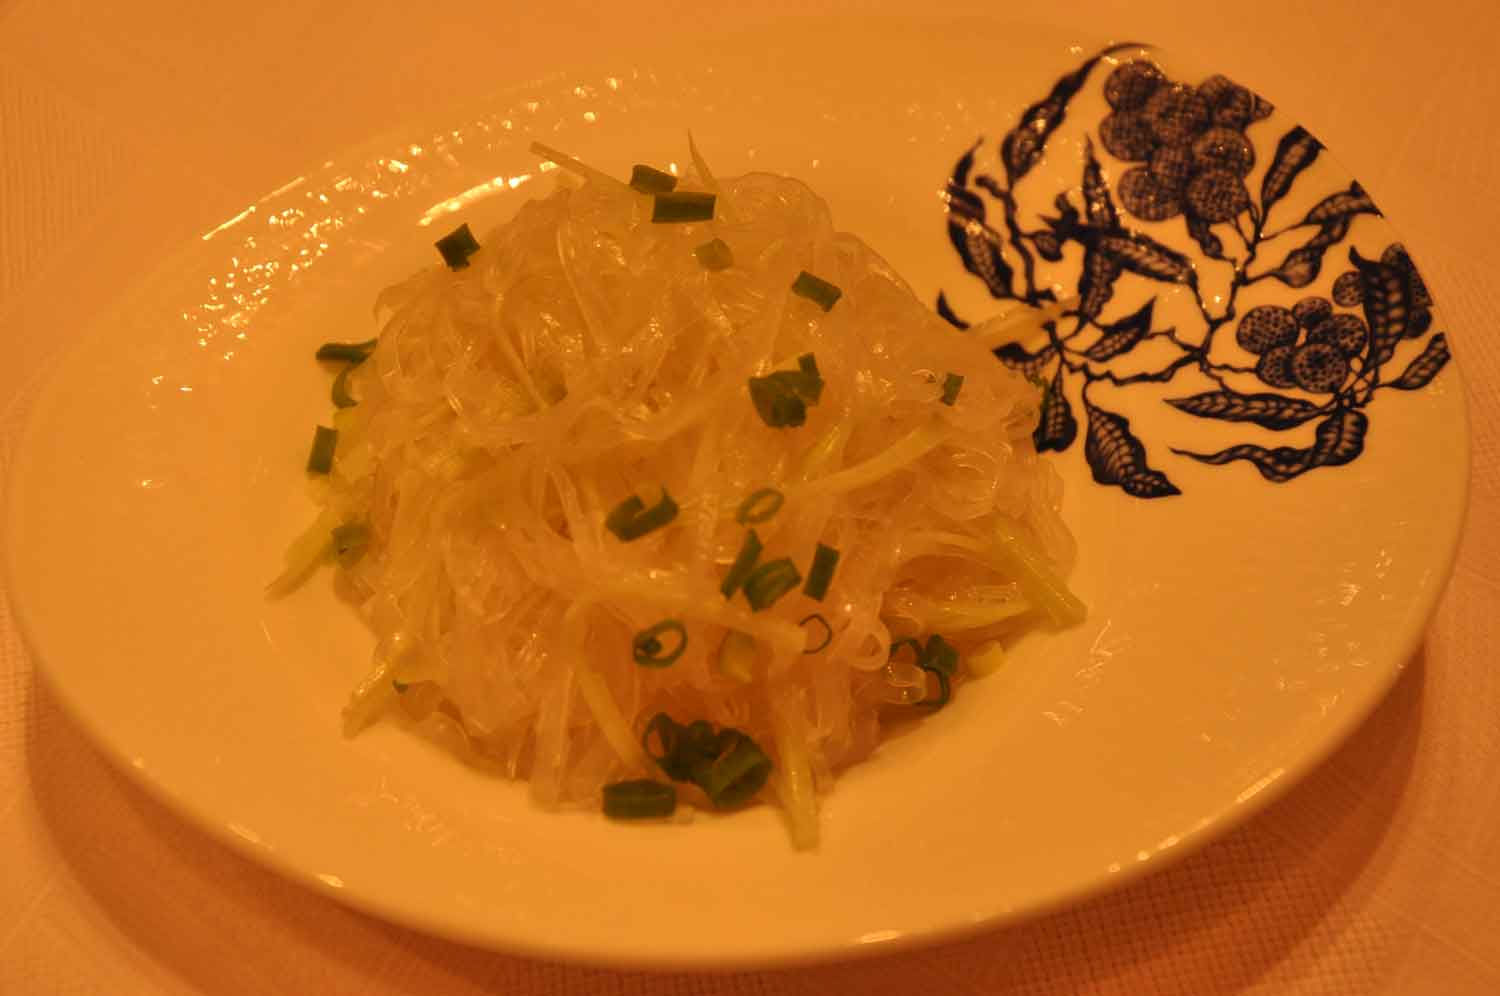 Golden Flower Macau Tossed Starched Noodles and Cucumbers with Mustard